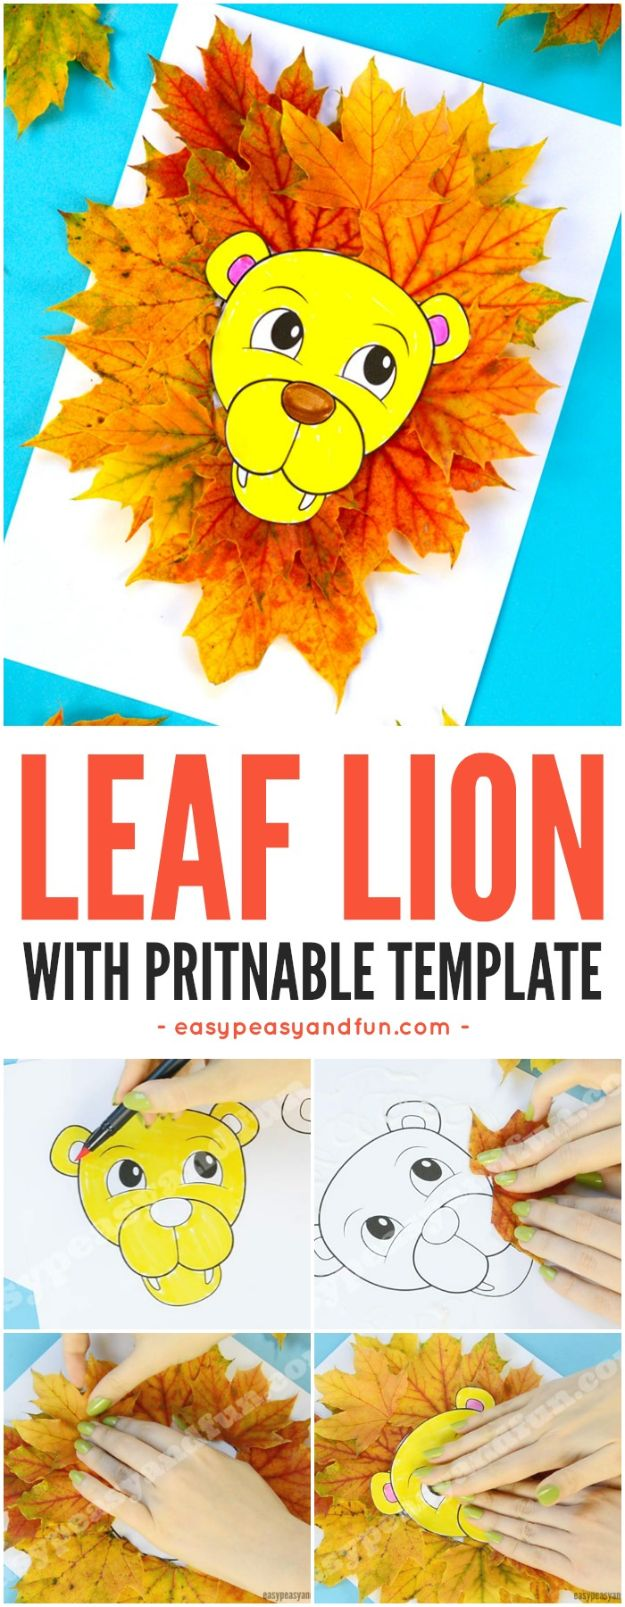 Fun Fall Crafts for Kids - Lion Leaf Craft - Cool Crafts Ideas for Kids to Make With Paper, Glue, Leaves, Corn Husk, Pumpkin and Glitter - Halloween and Thanksgiving - Children Love Making Art, Paintings, Cards and Fall Decor - Placemats, Place Cards, Wall Art , Party Food and Decorations for Toddlers, Boys and Girls http://diyjoy.com/fun-fall-crafts-kids